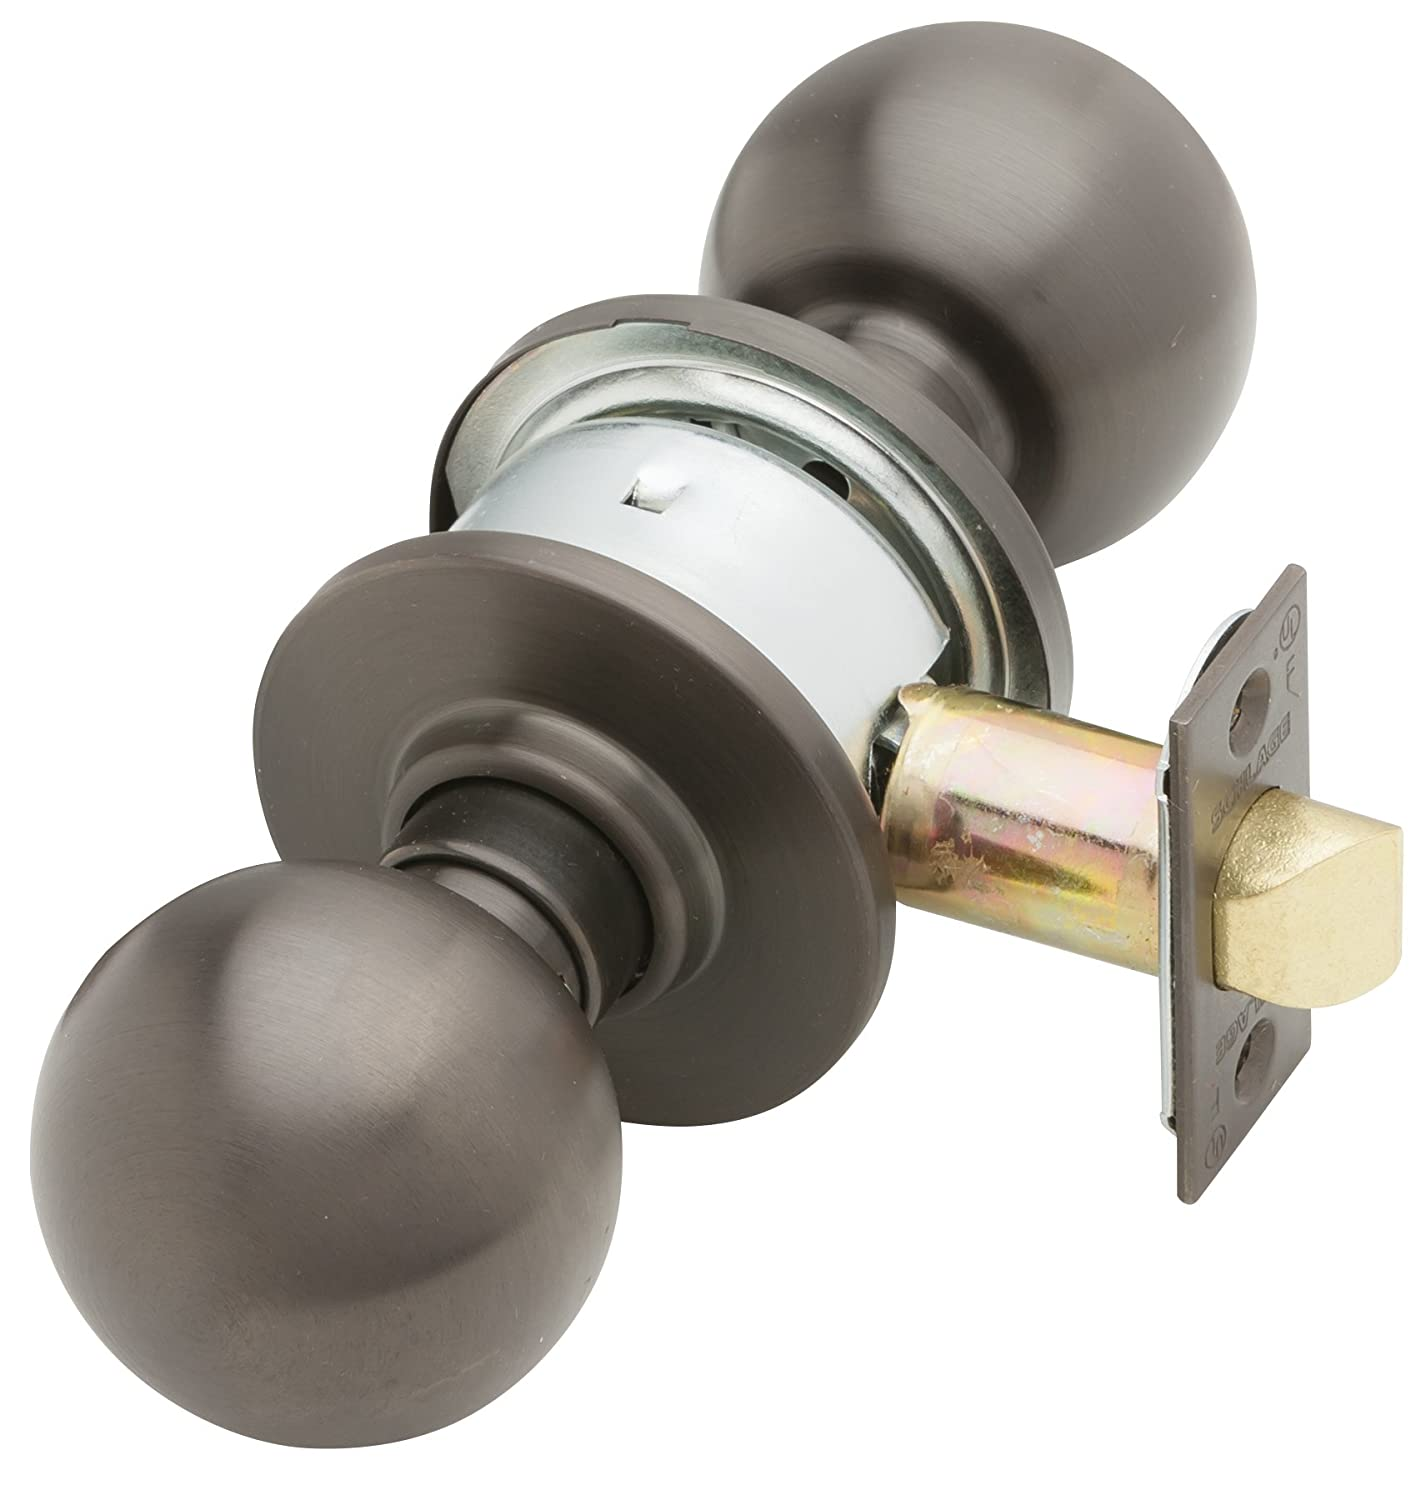 Schlage A10S ORB 613 Series A Grade 2 Cylindrical Lock Keyless Orbit Design Passage Function Oil Rubbed Bronze Finish